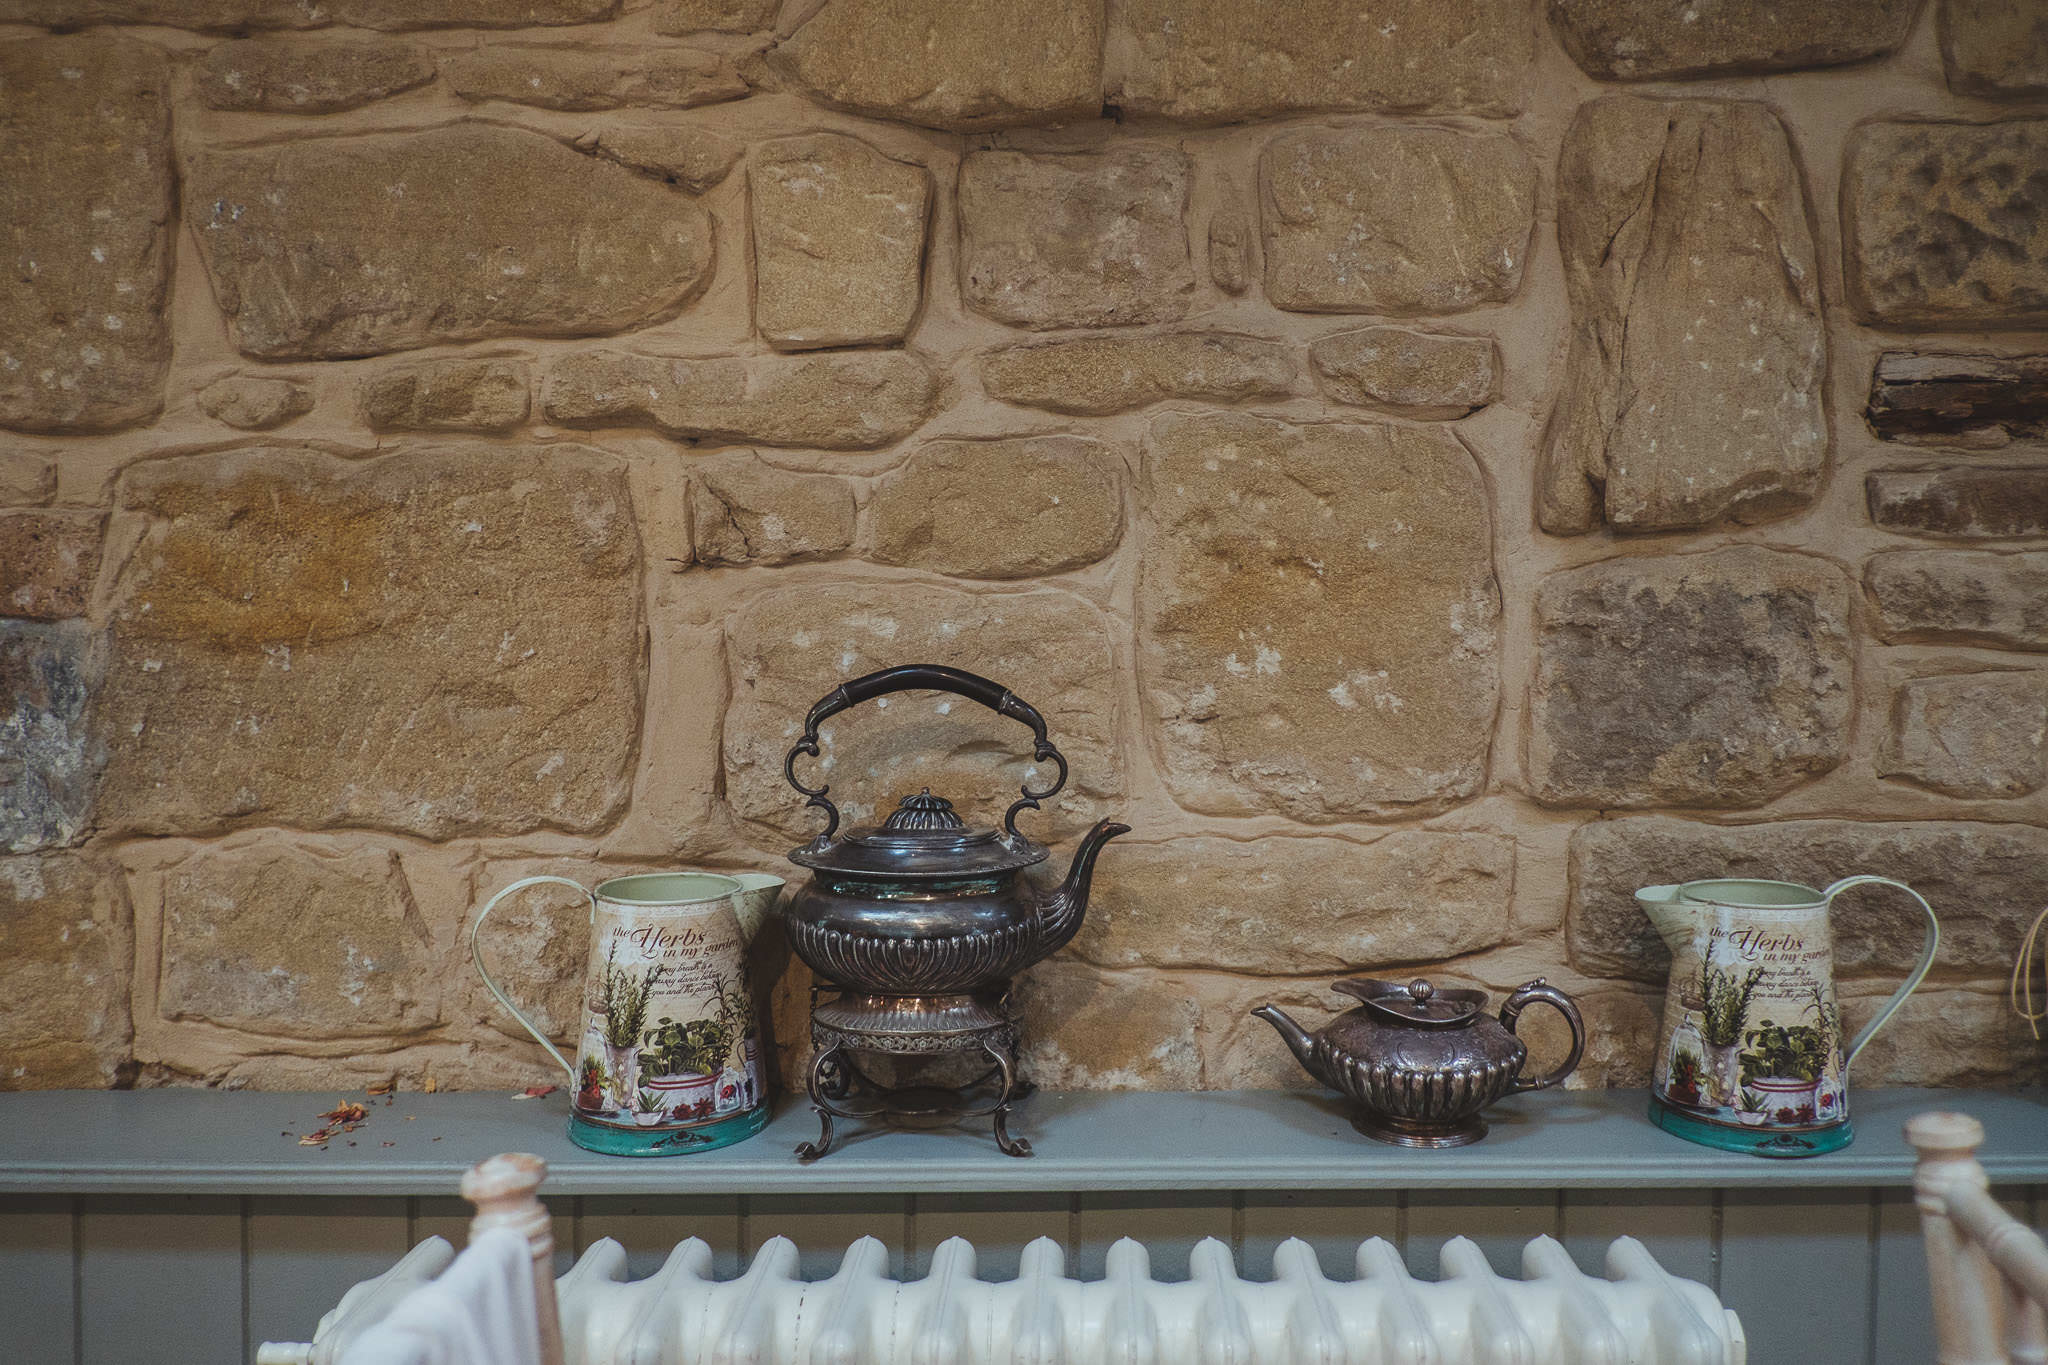 All the textures and details scattered around The Parlour at Blagdon make it a great place for wedding photography